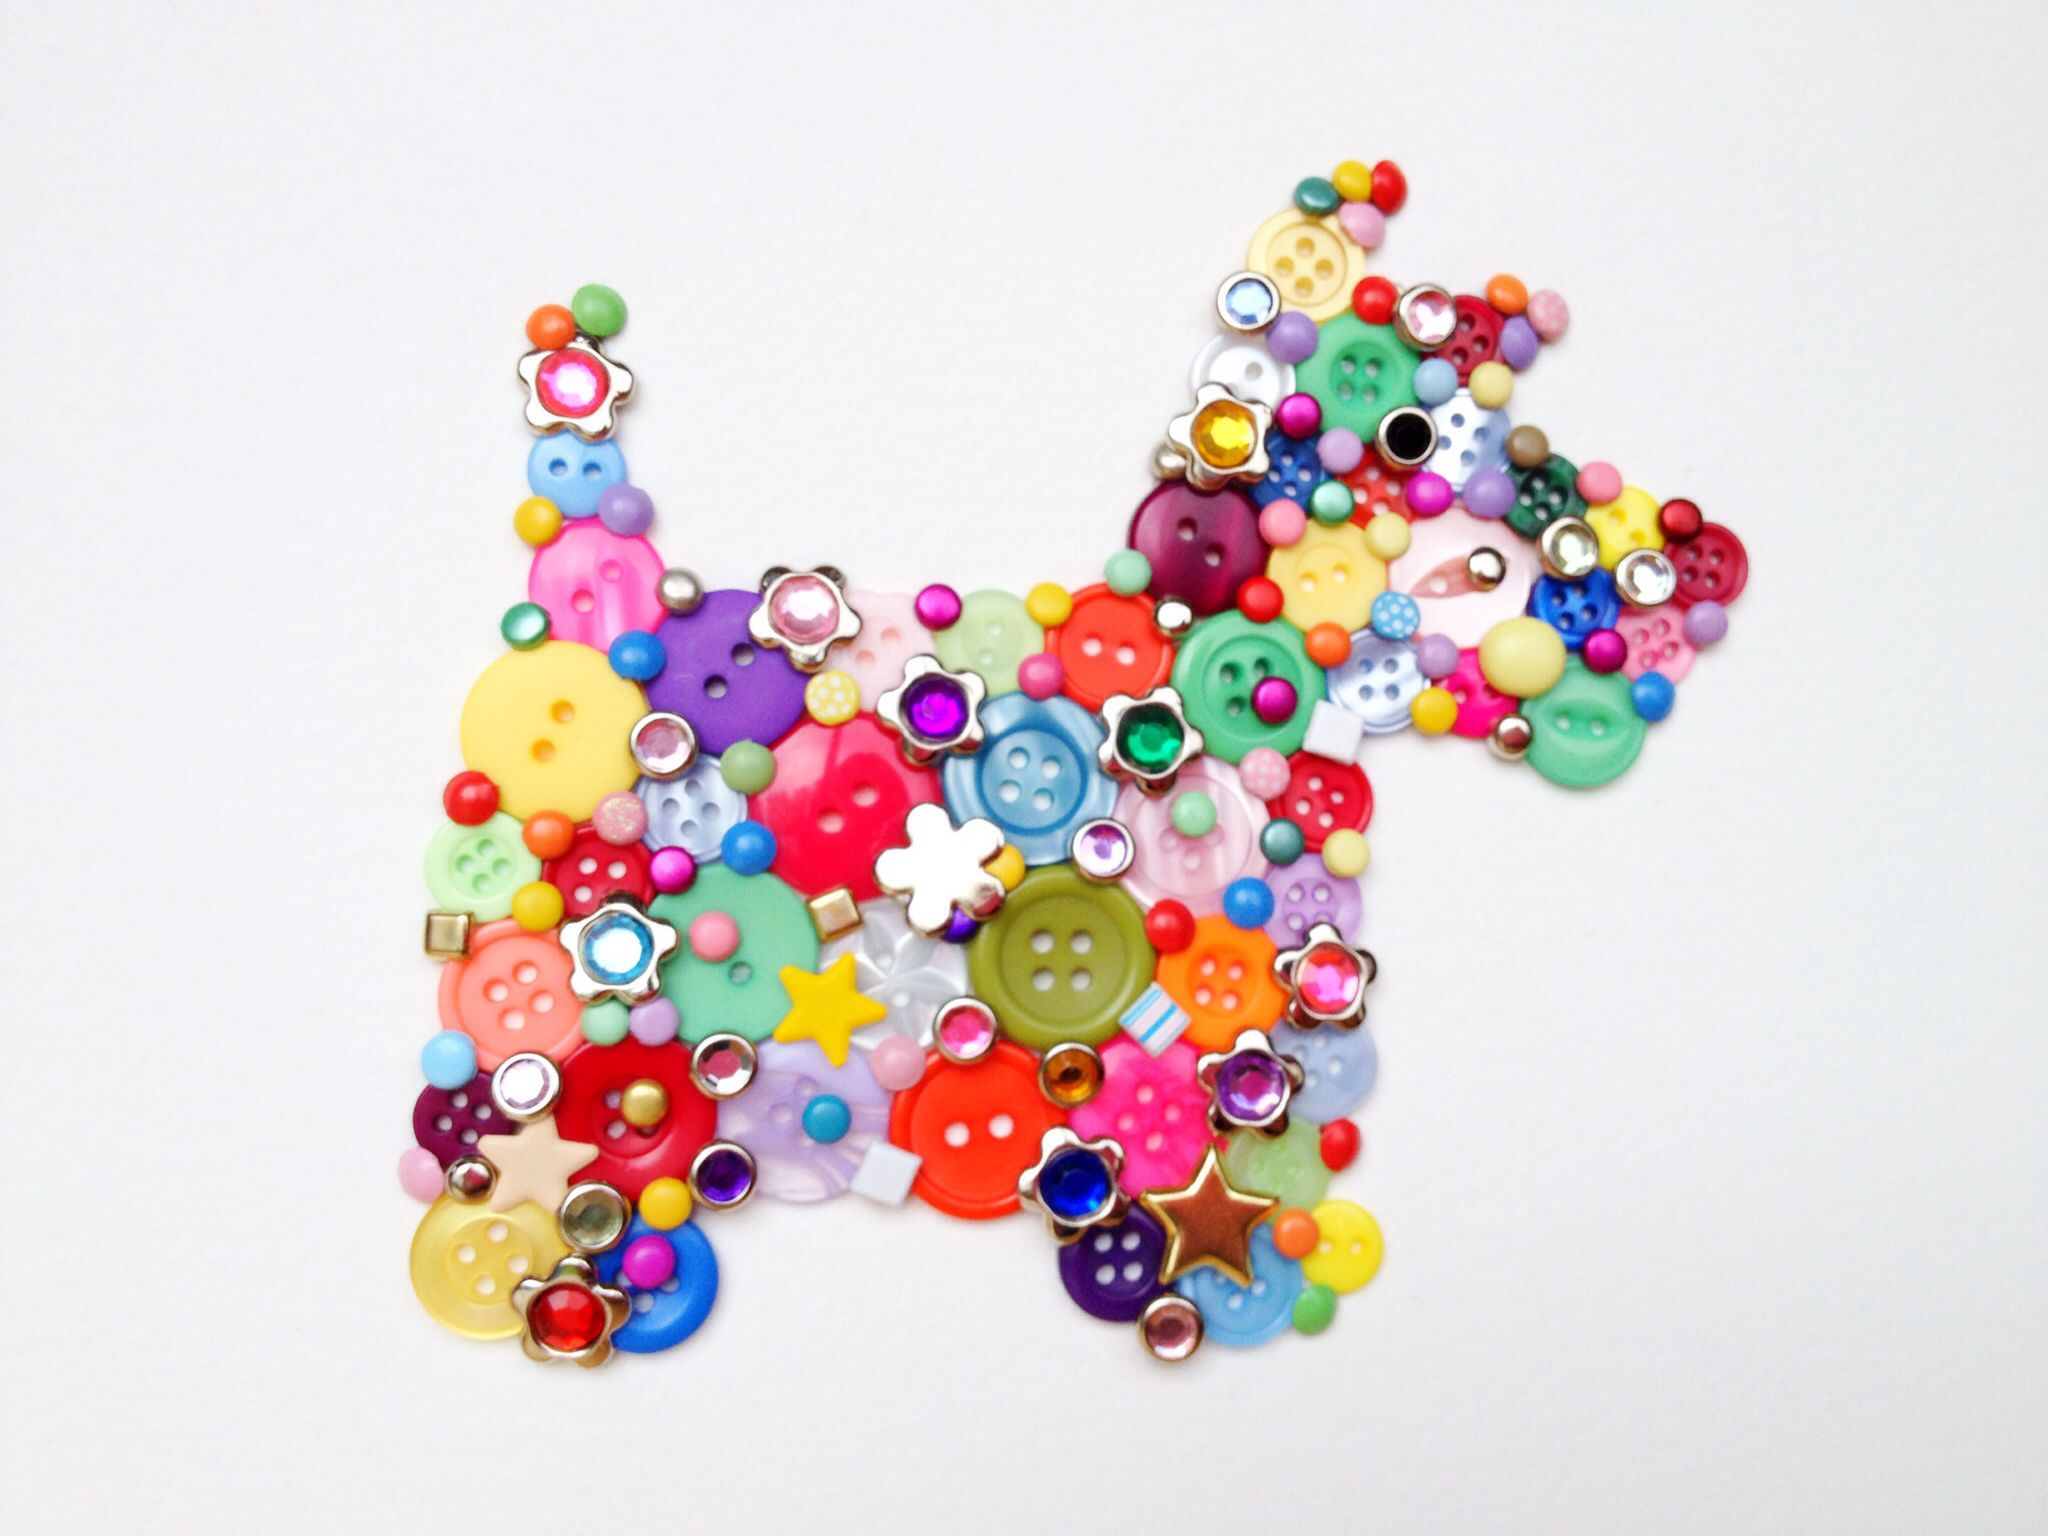 Scottie dog button art button craft pinterest for Button crafts for adults